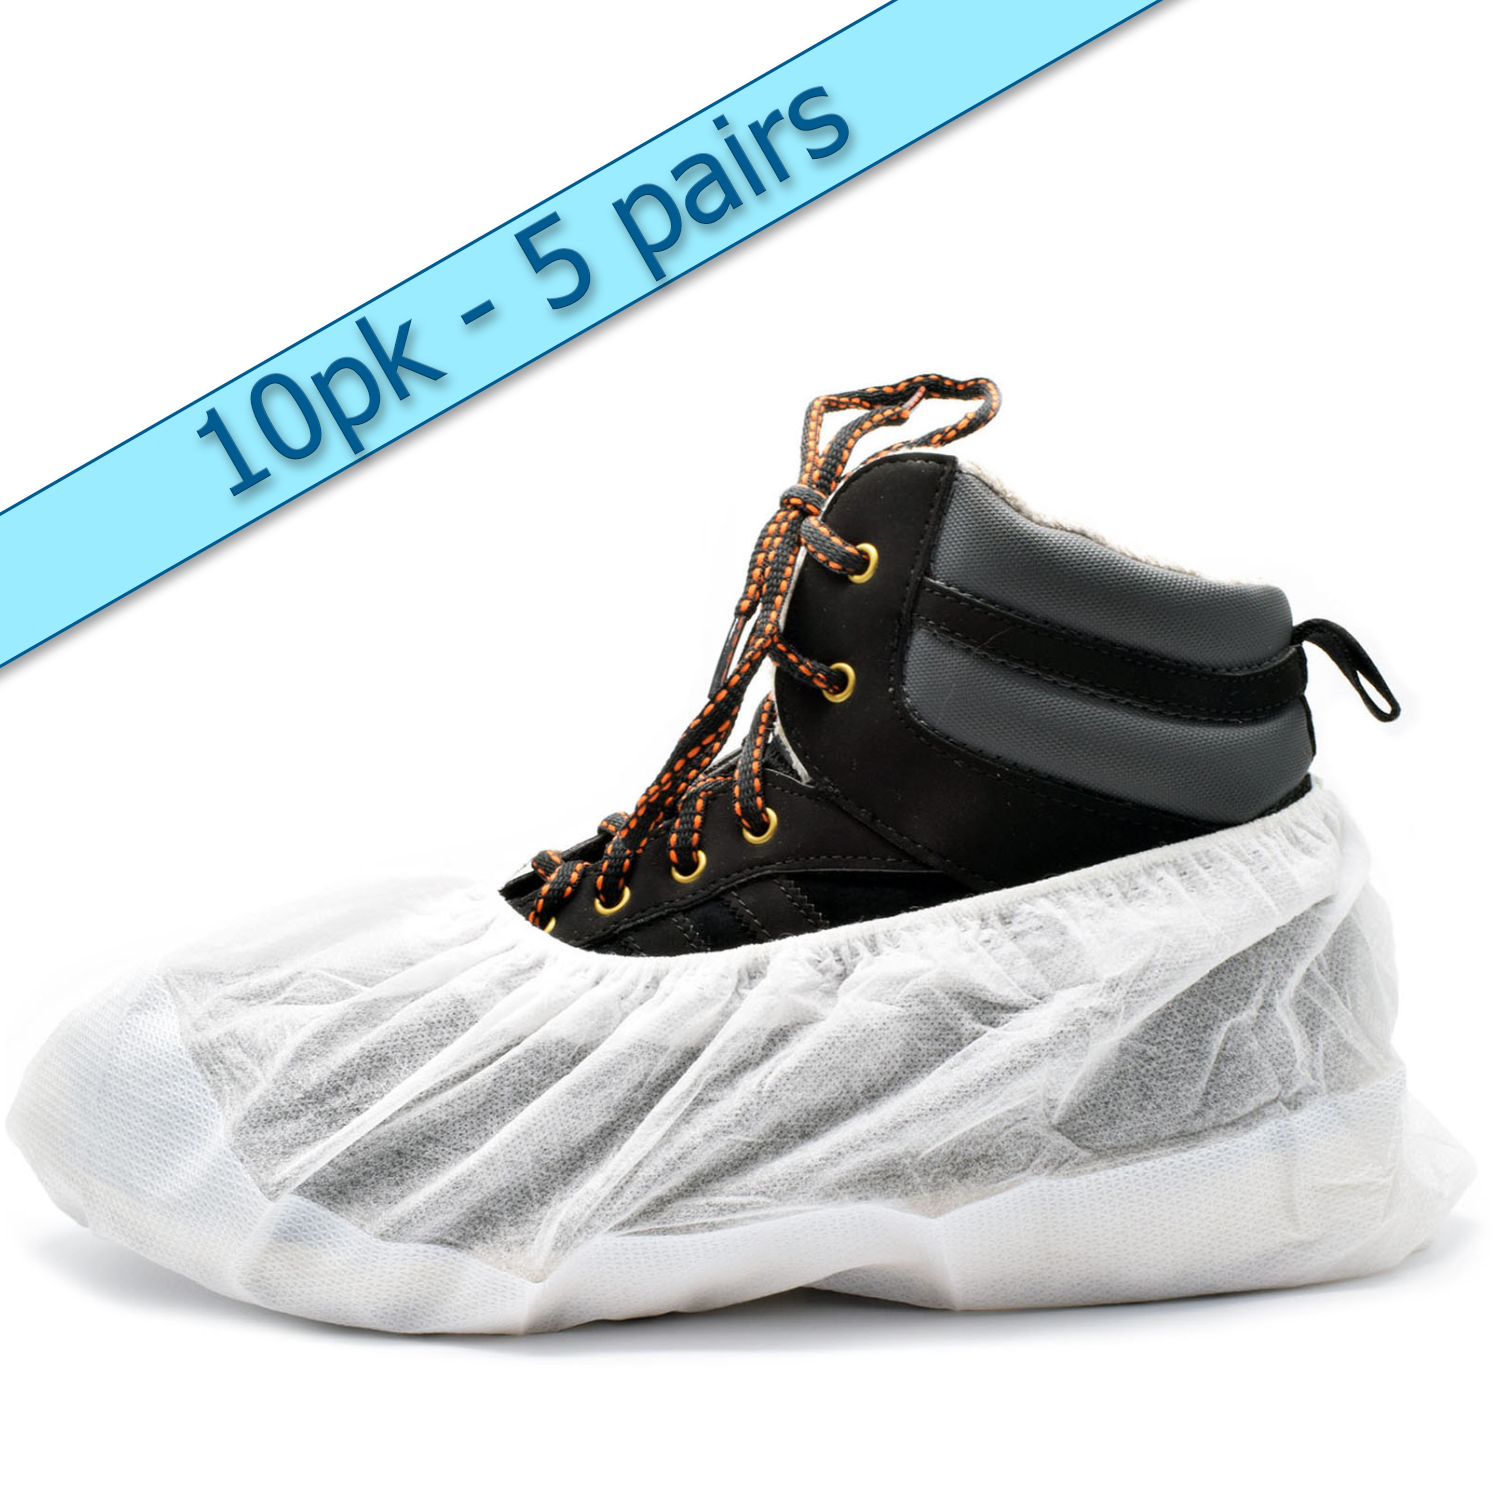 Heavy Duty Tear Resistant Re-Usable Overshoes Shoe Covers All Qties White